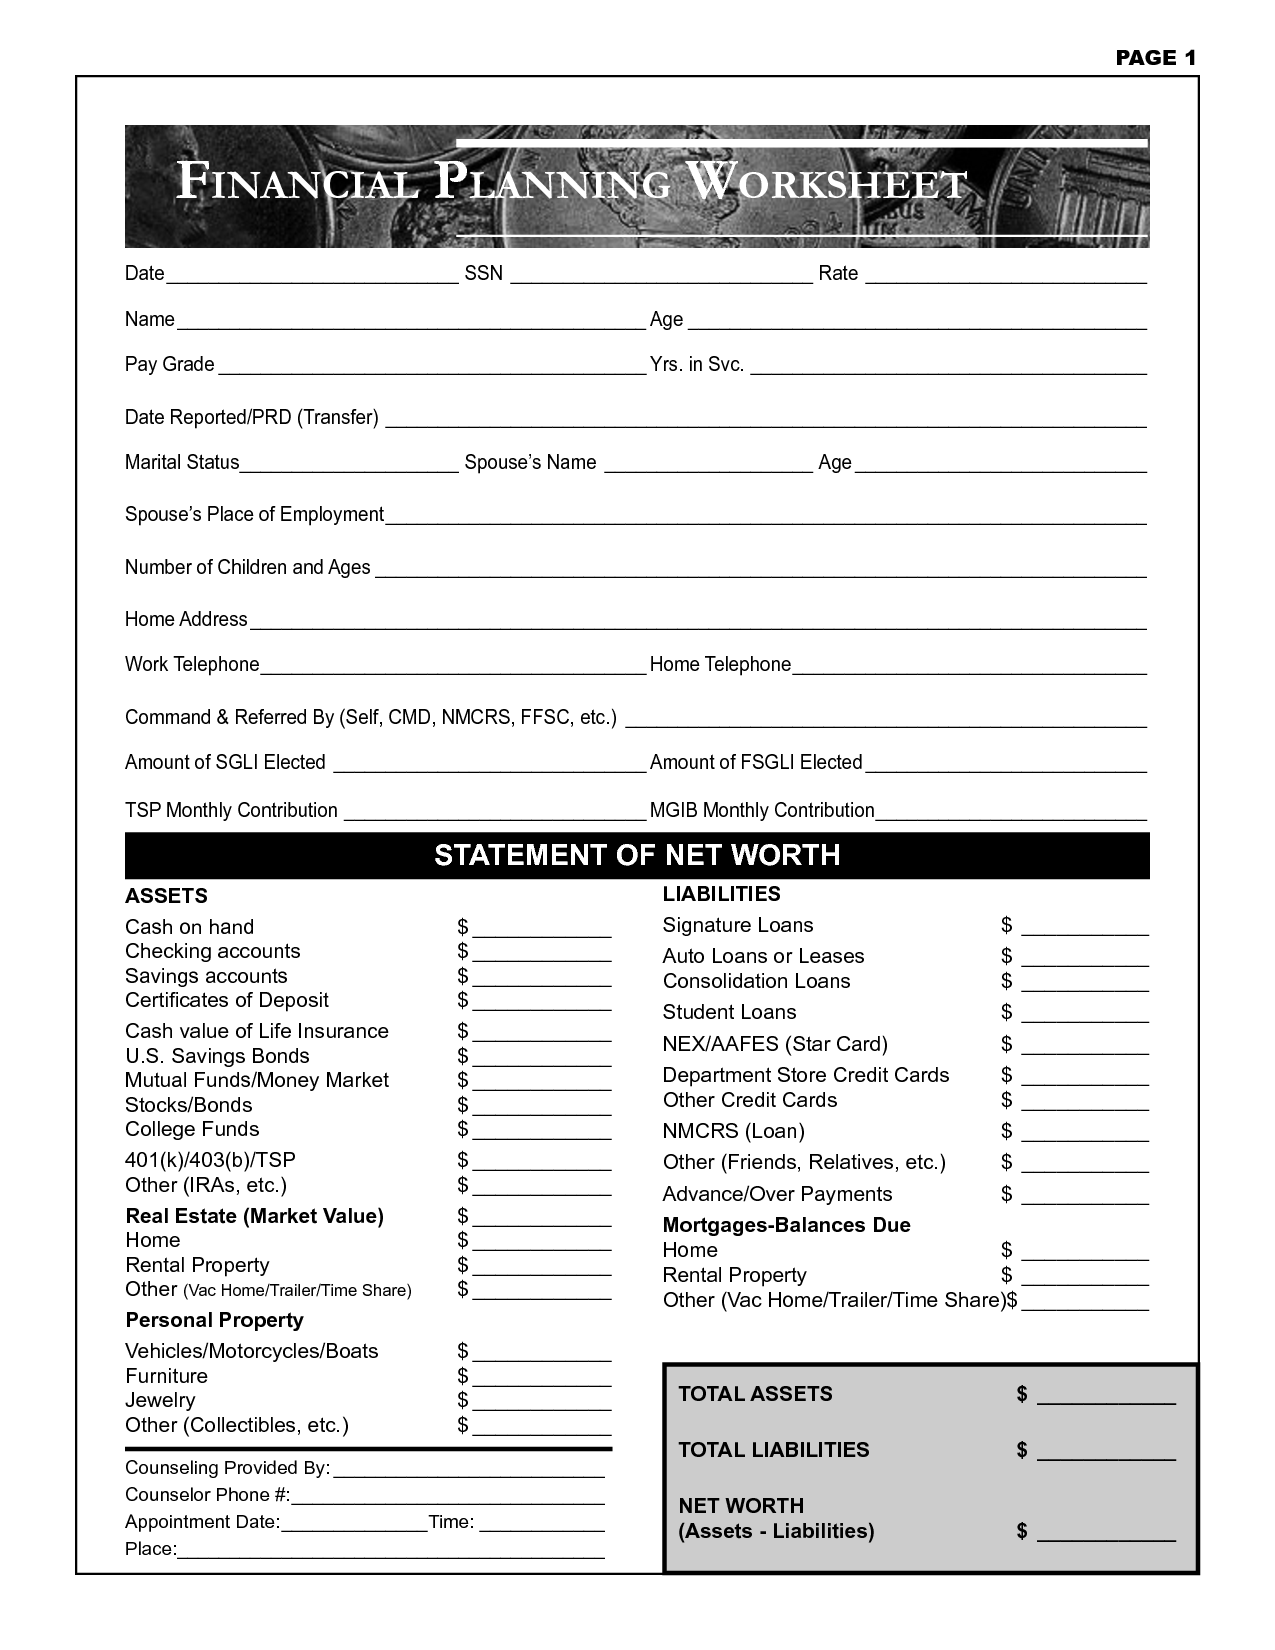 Finance Planning Worksheet